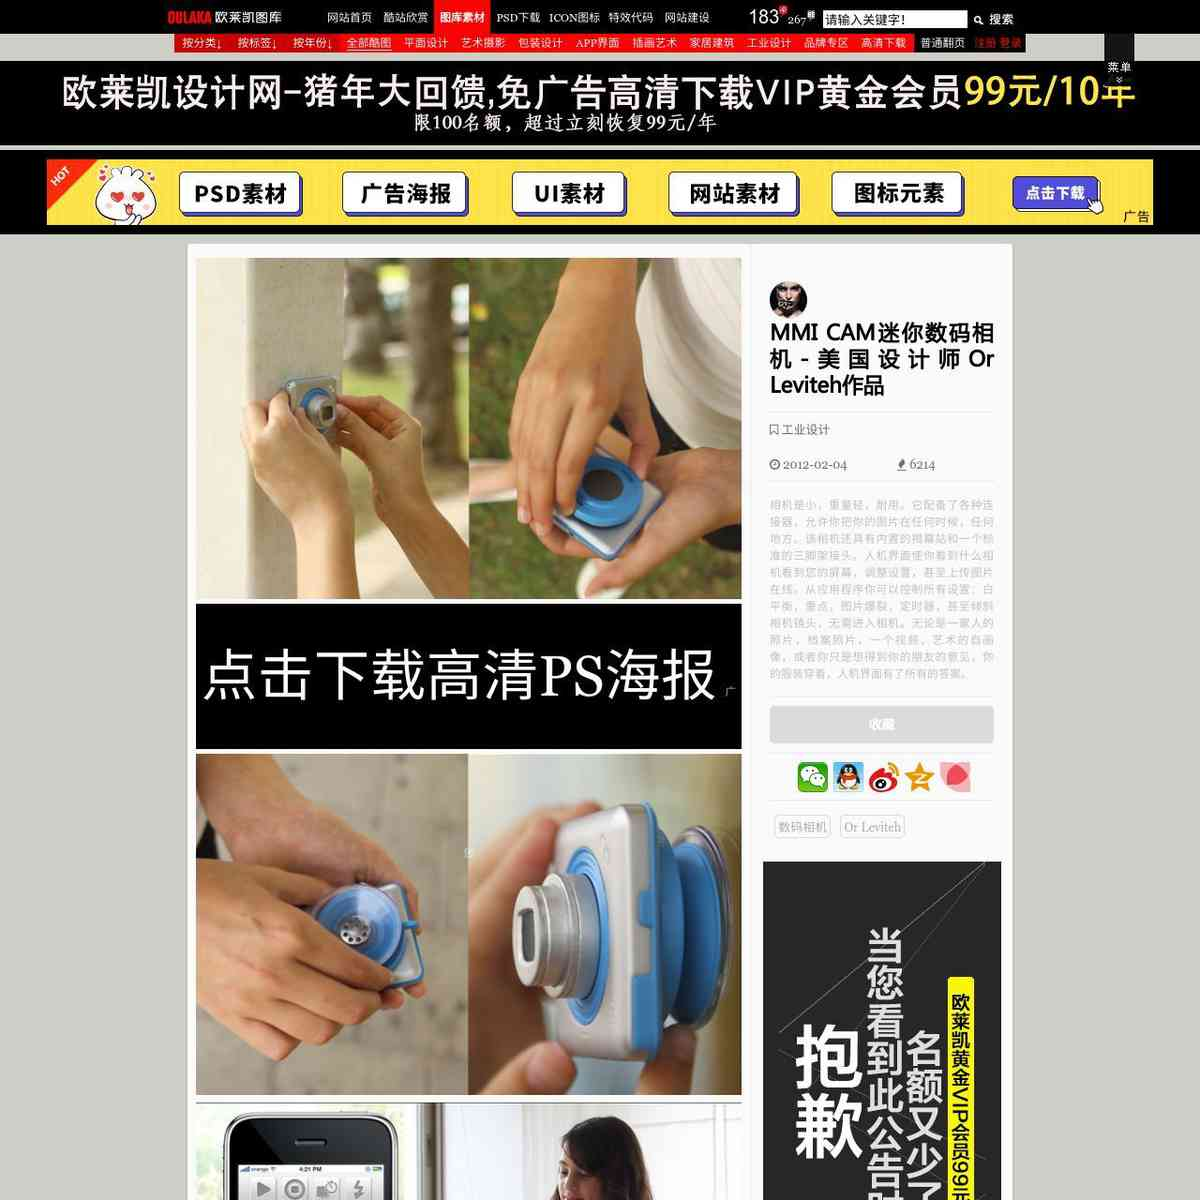 abc.2008php.com/Design_news.php?id=908576&topy=12